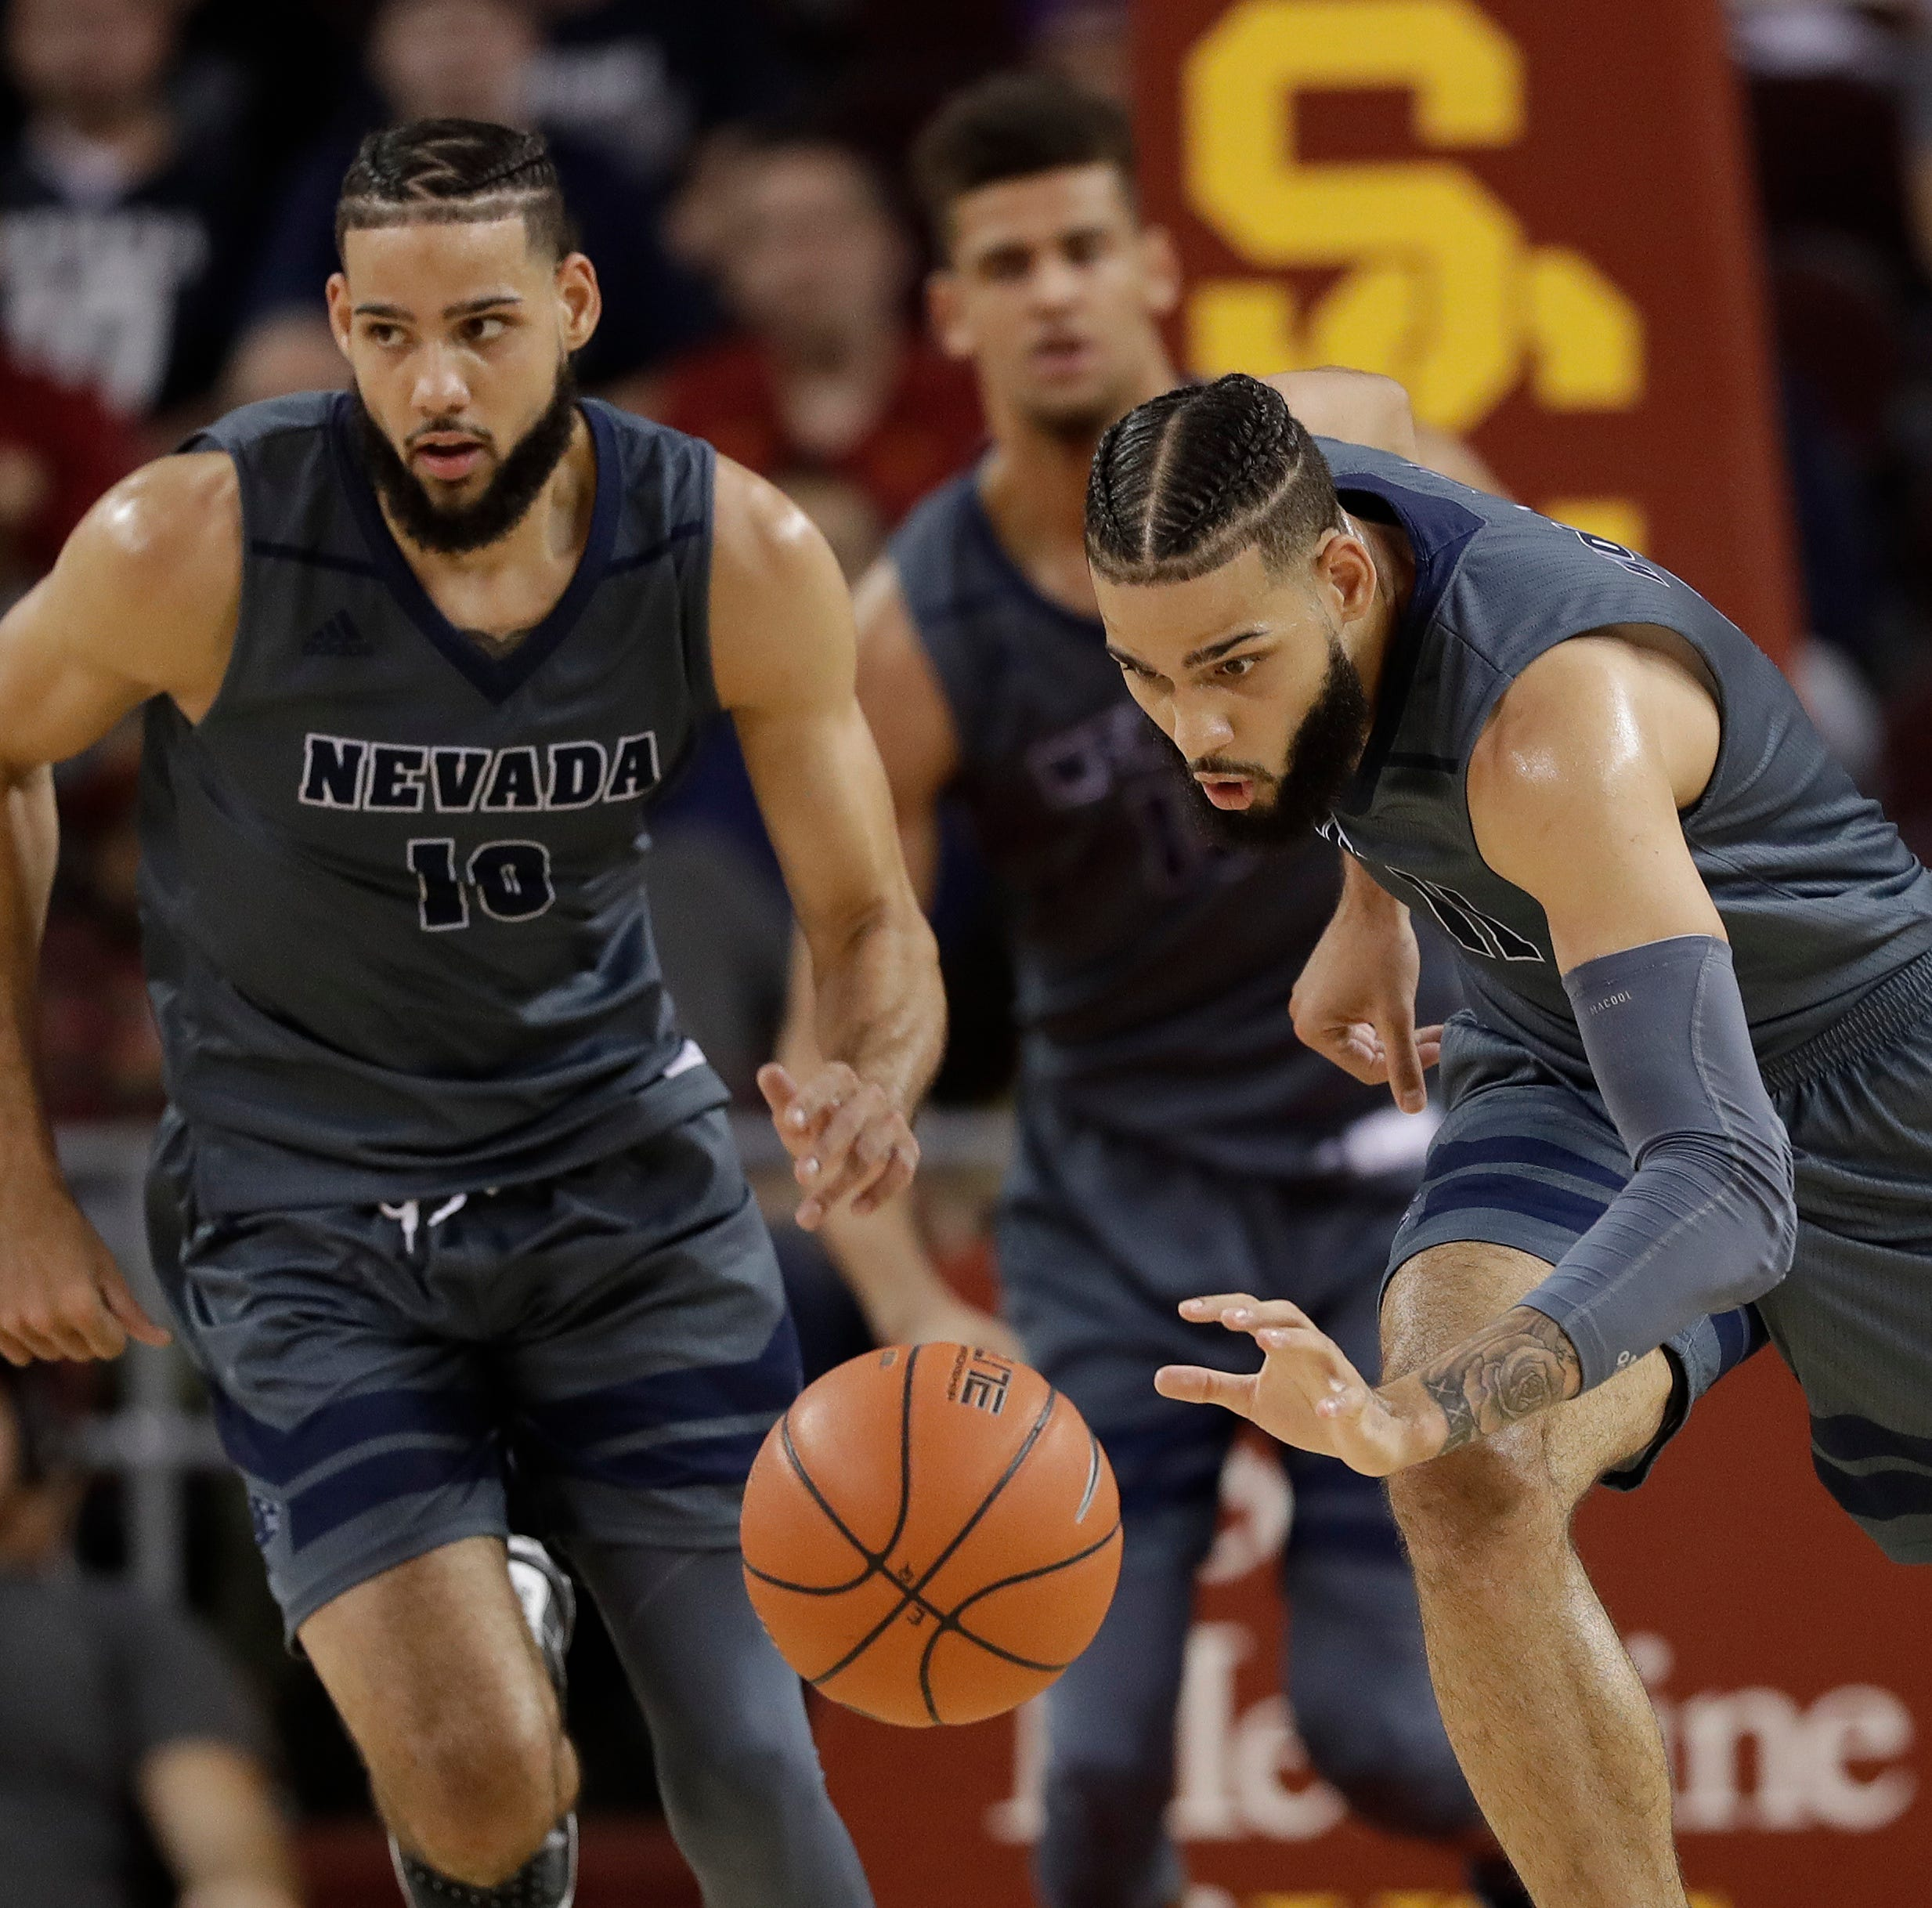 Pack's Caleb and Cody Martin get G-League Elite Camp invites